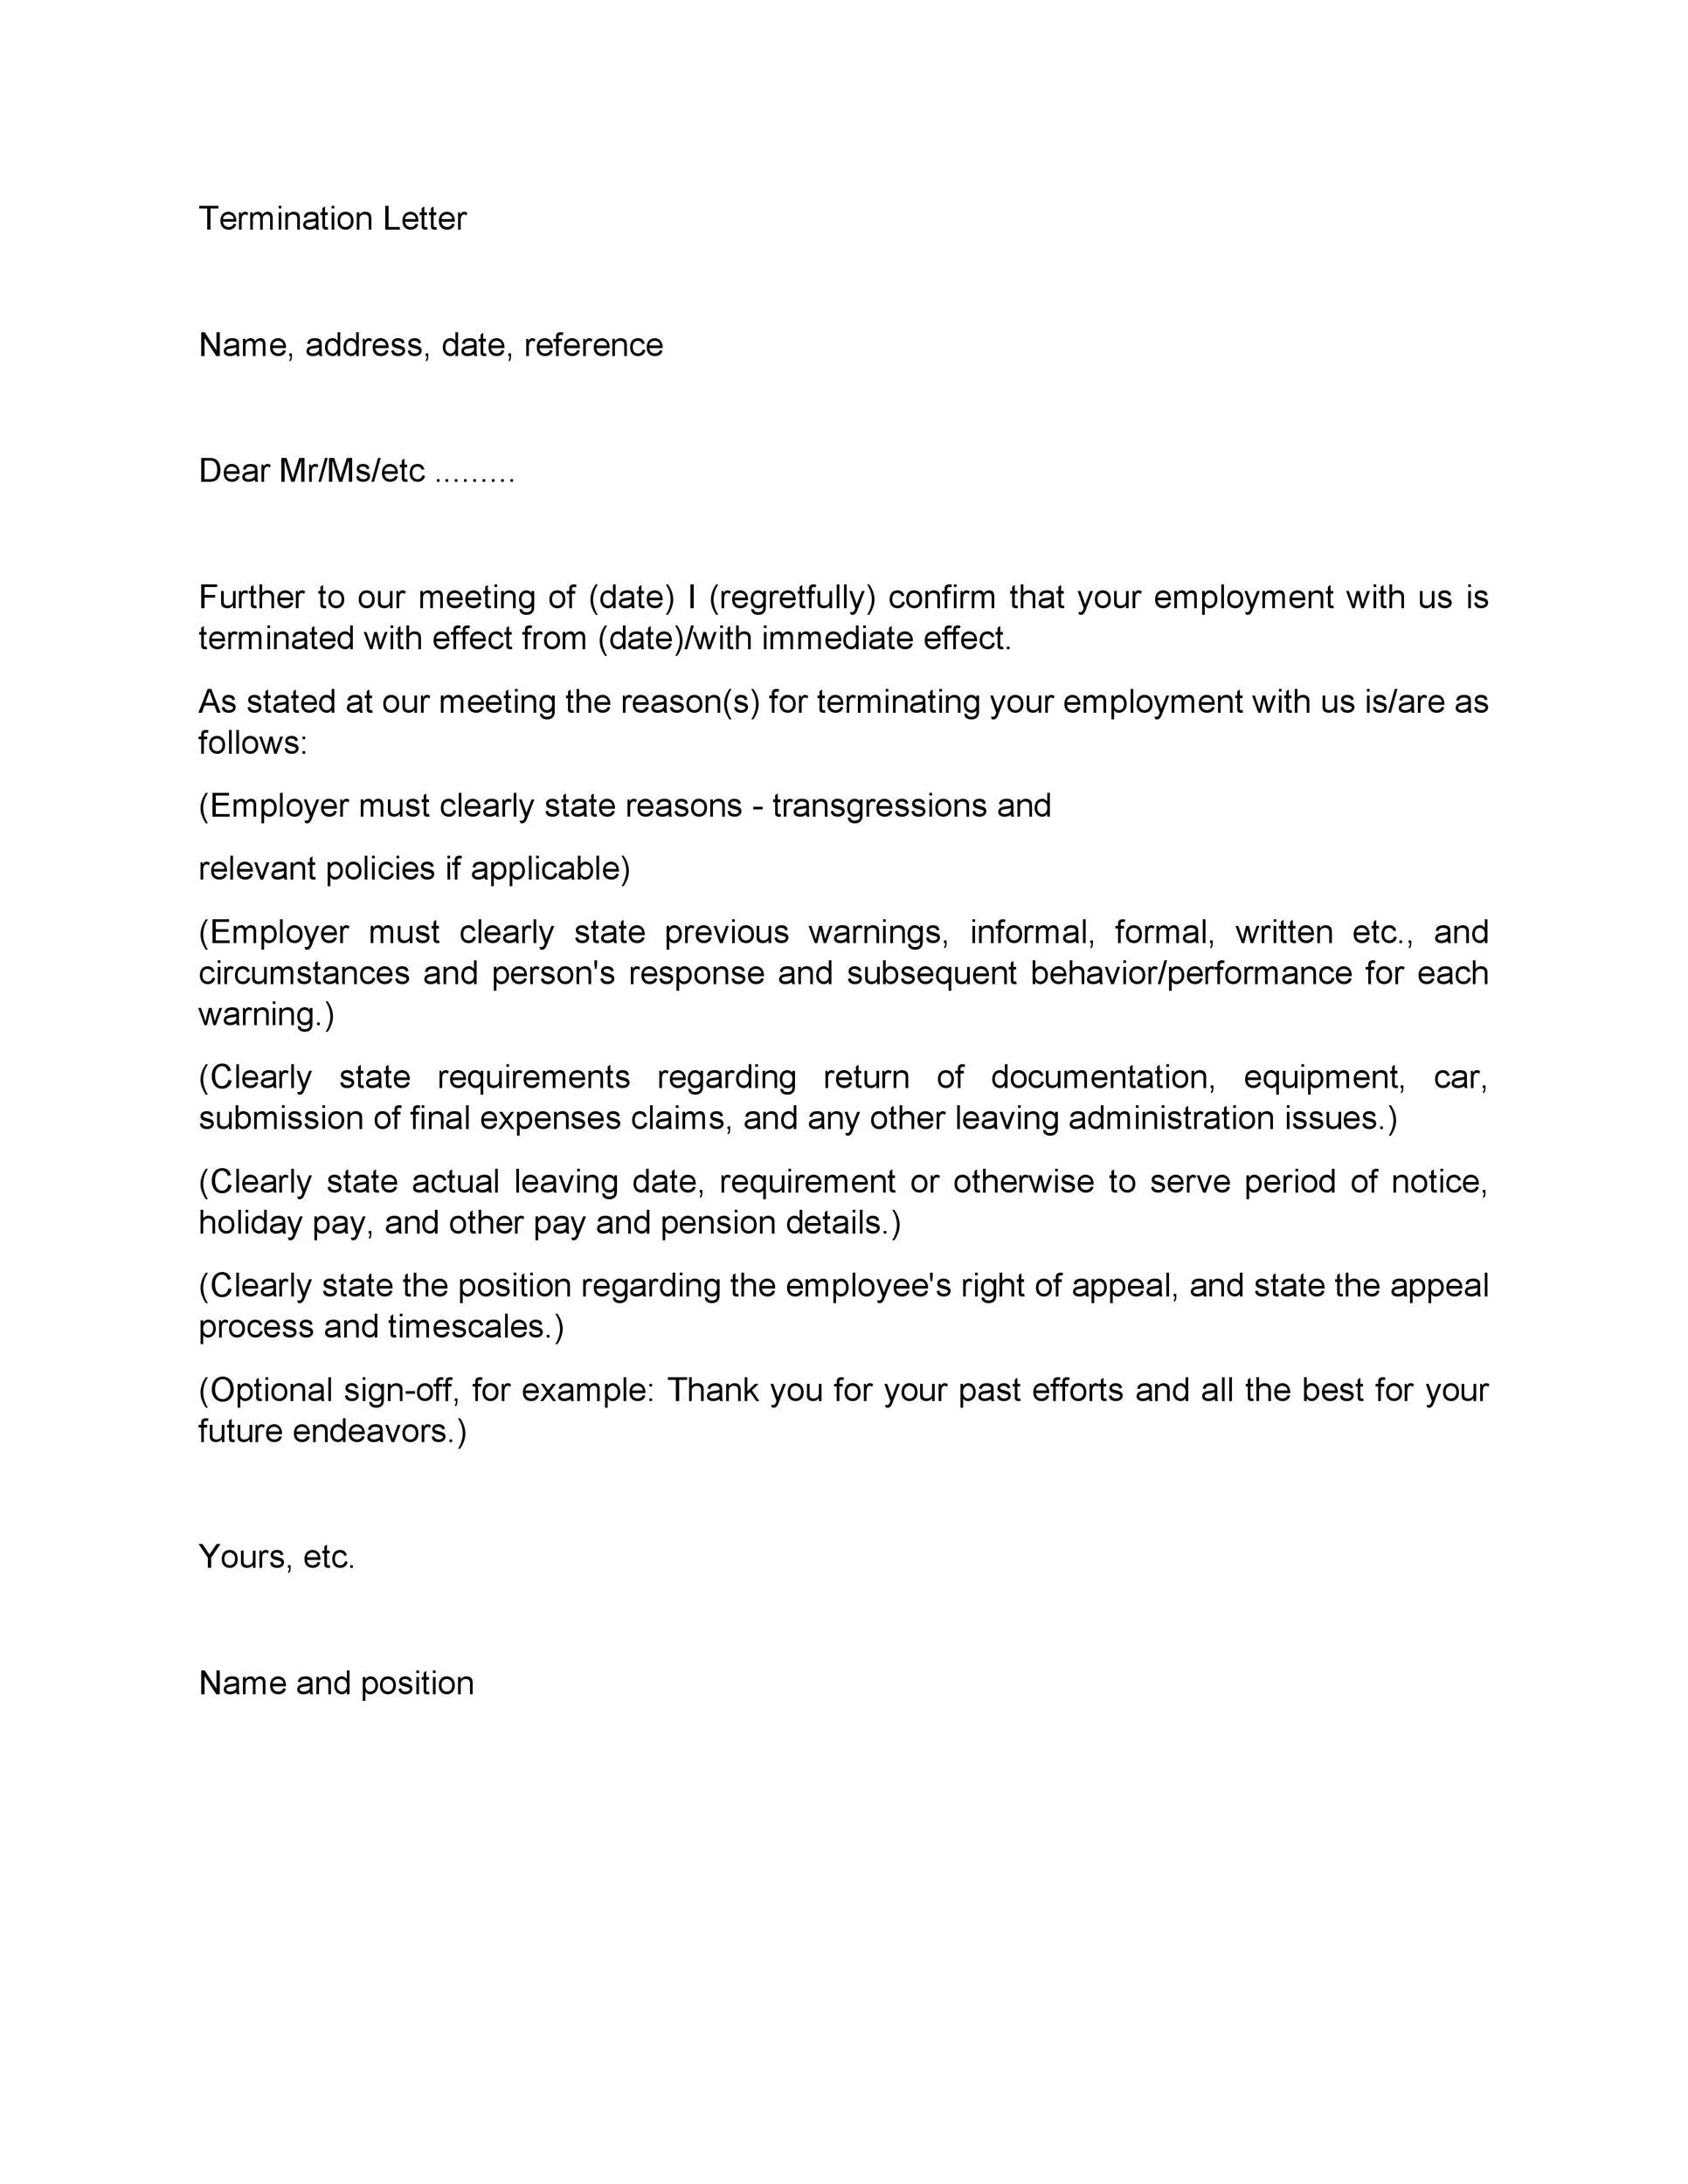 employment termination letters - Onwebioinnovate